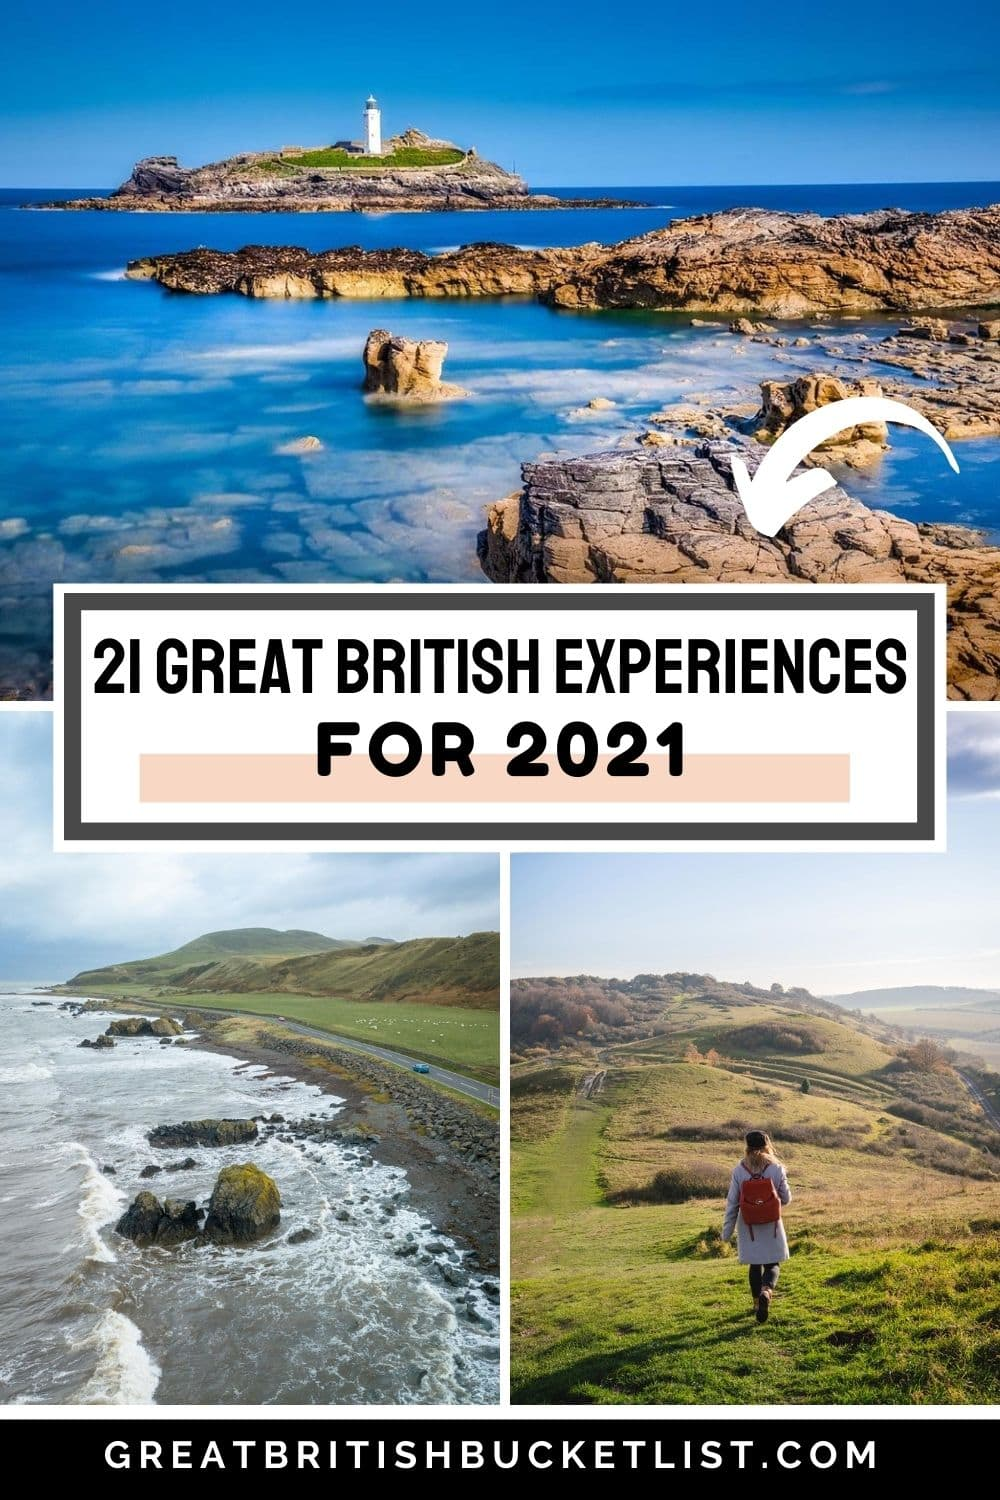 21 Incredible Great British Experiences to Have in 2021